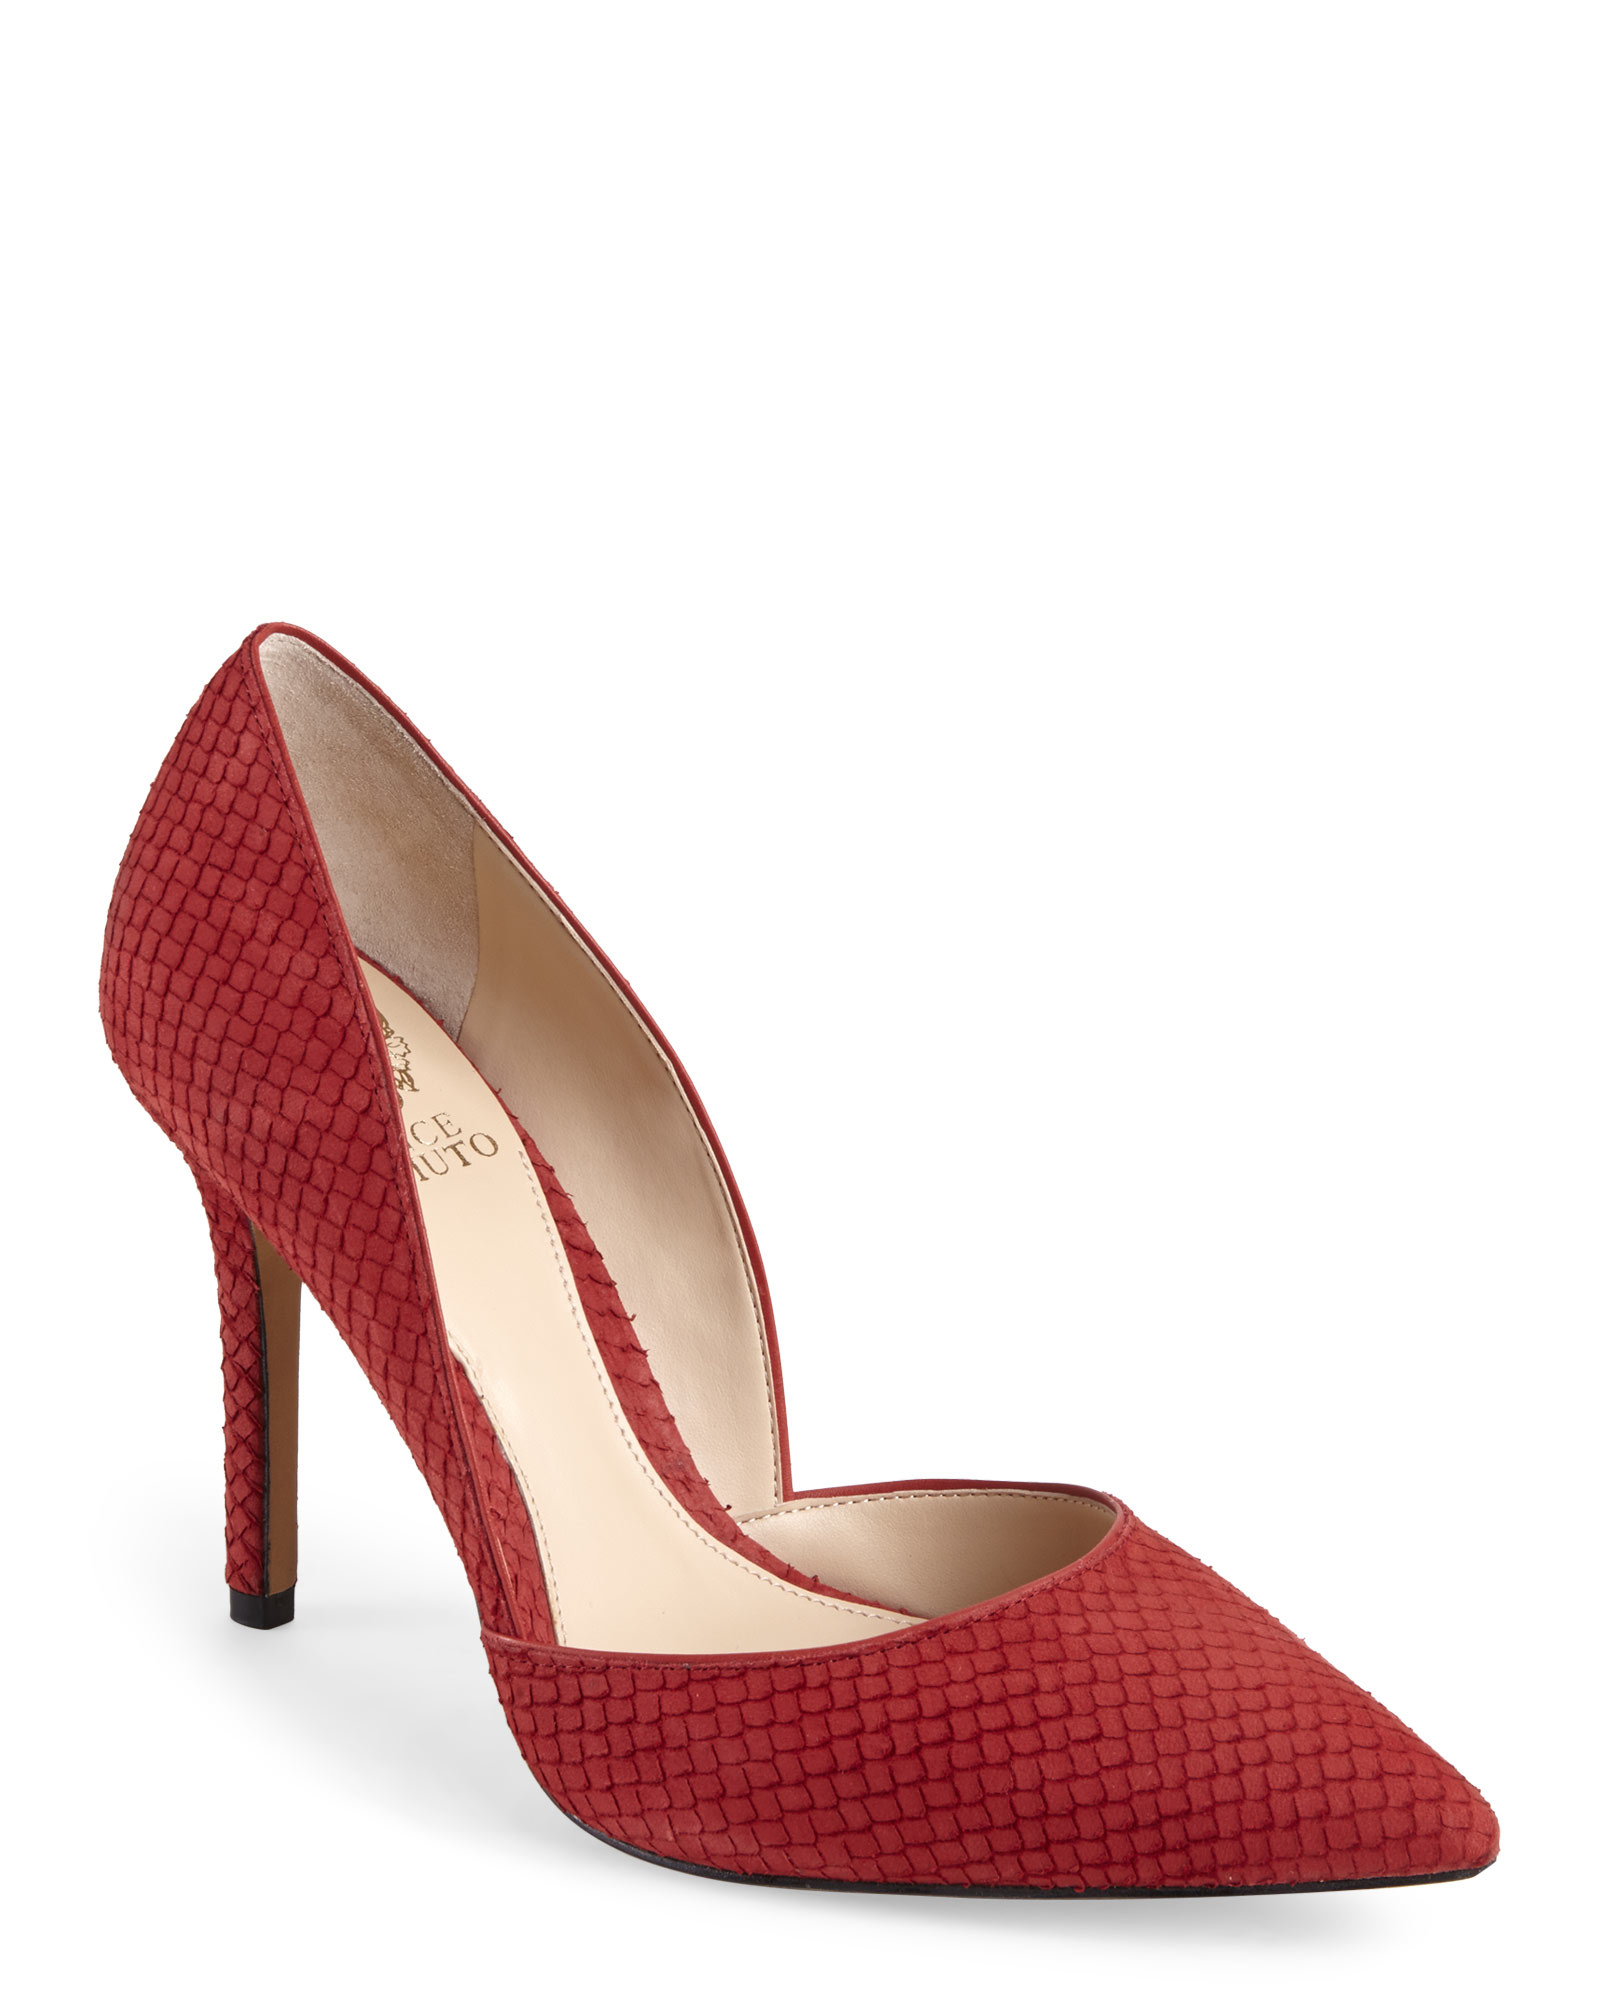 087cd3efe681 Lyst - Vince Camuto Red Rowin Pumps in Red